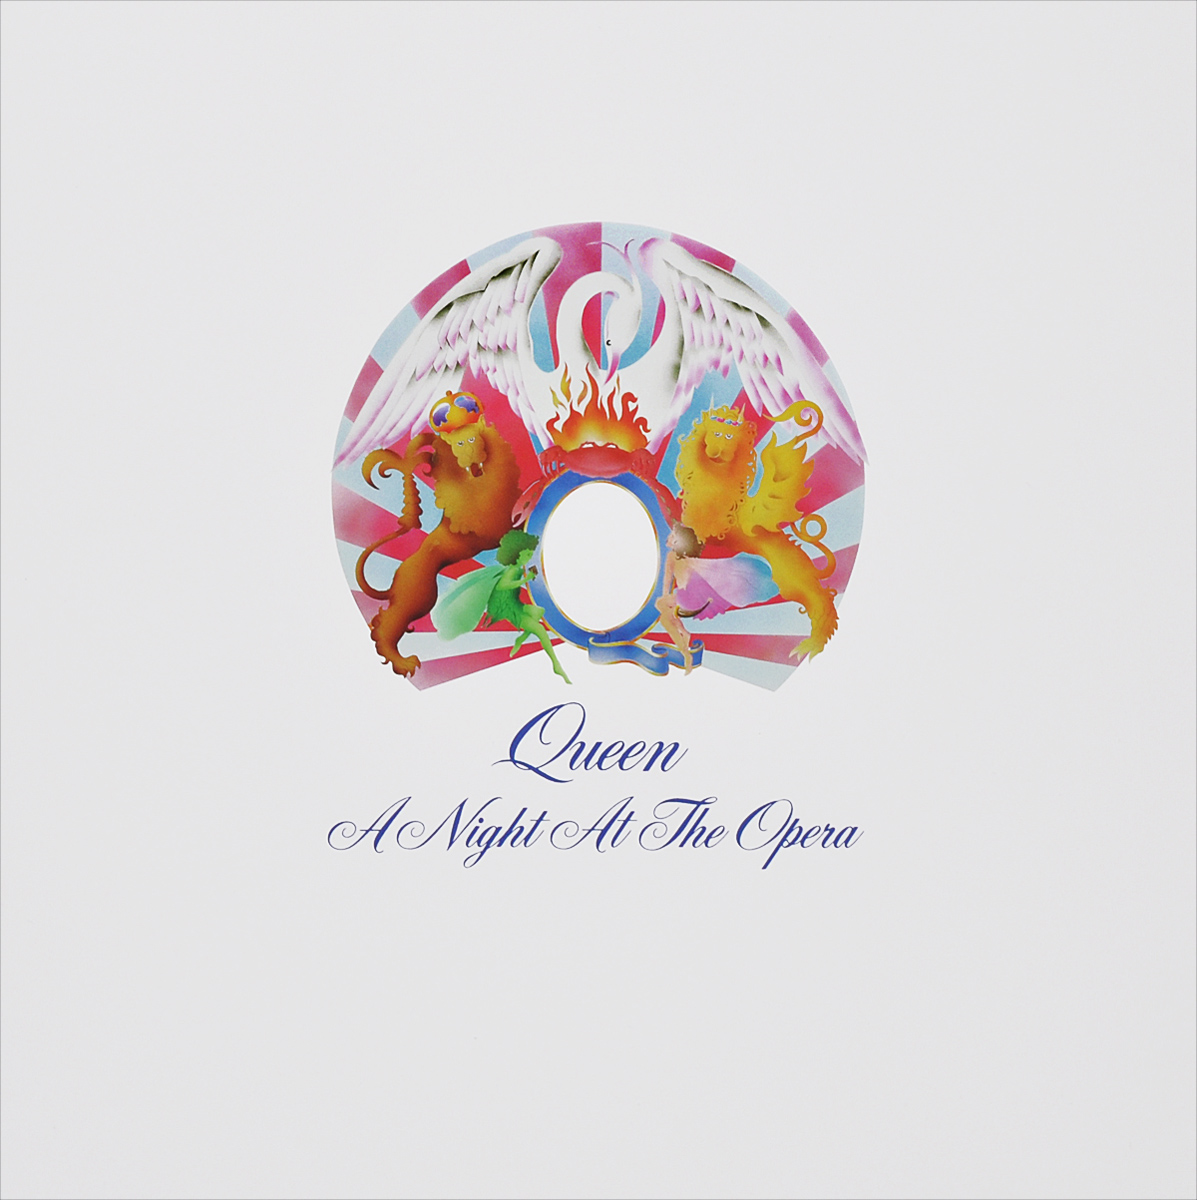 Queen Queen. A Night At The Opera (LP) queen queen a night at the opera lp